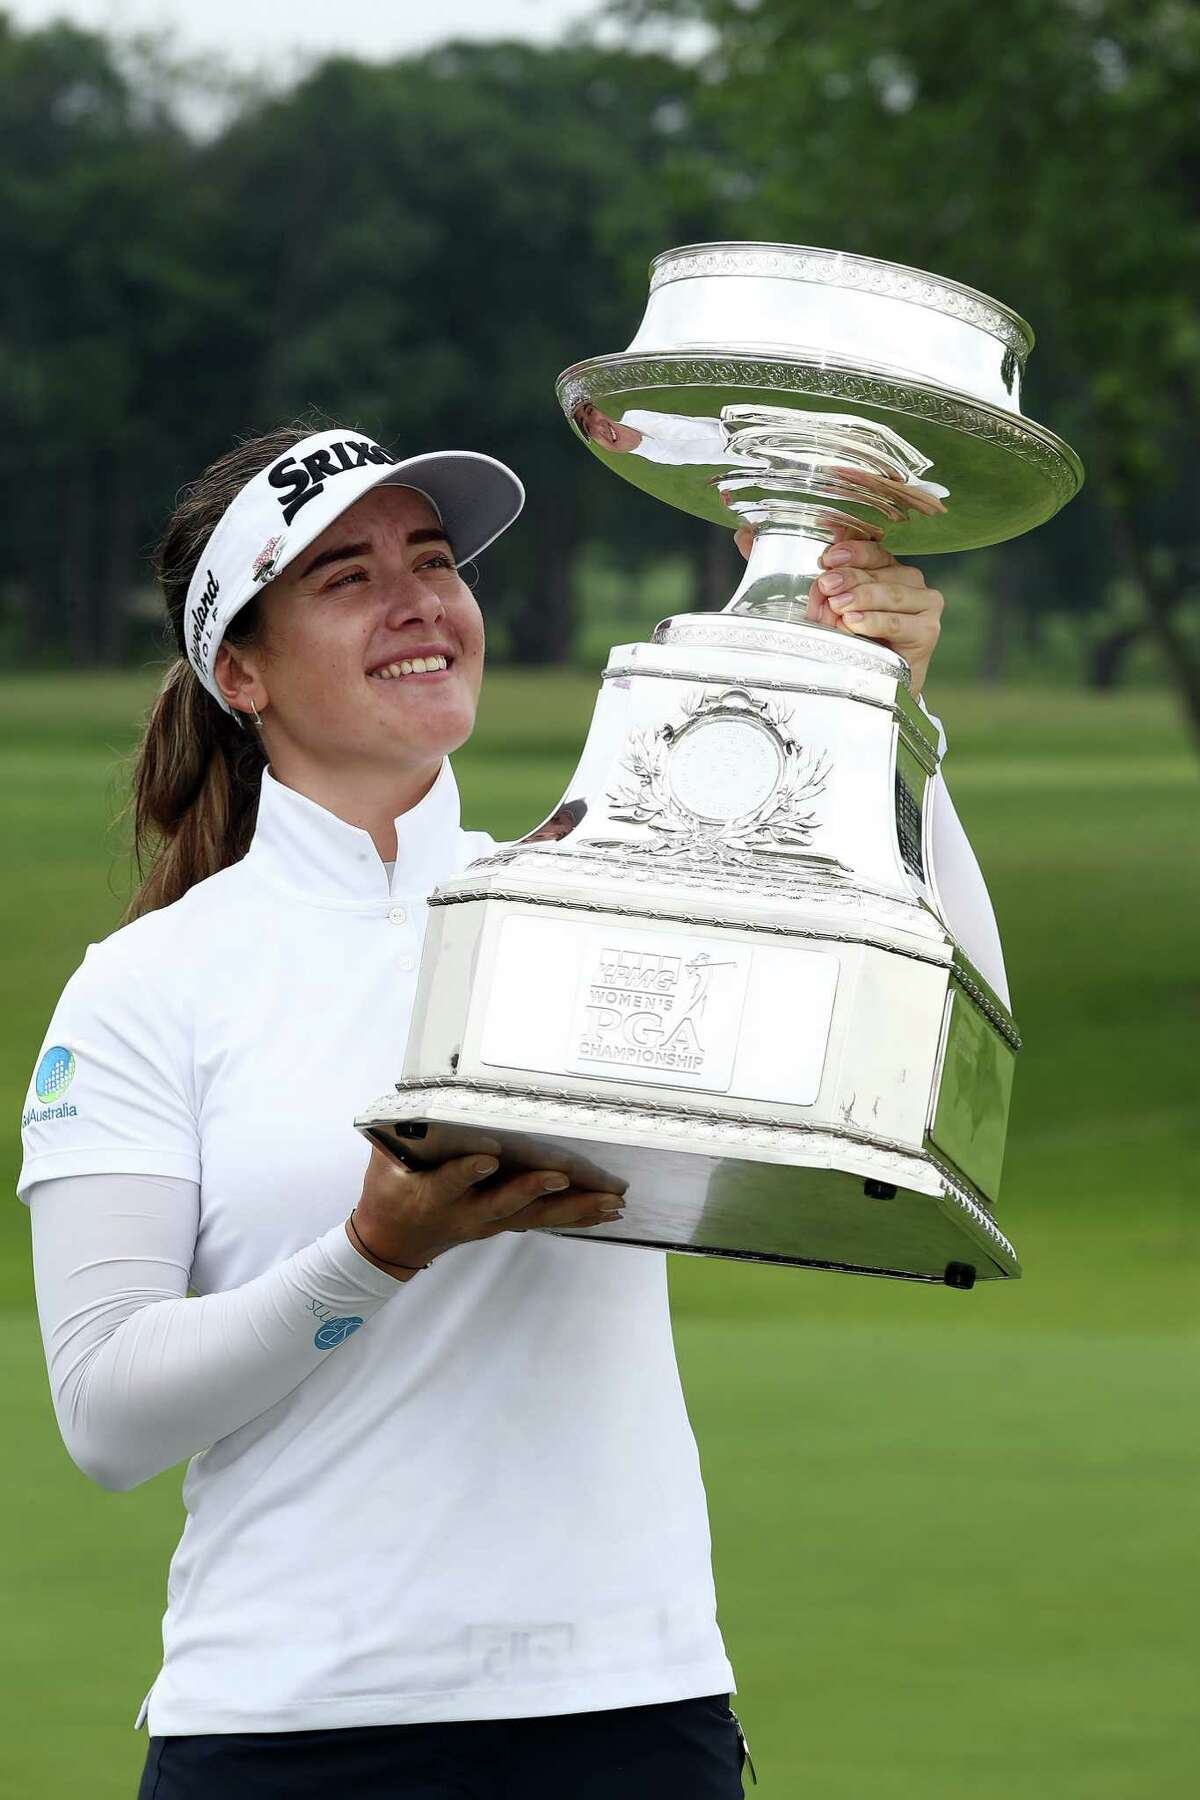 CHASKA, MINNESOTA - JUNE 23: Hannah Green of Australia poses with the trophy after winning the KPMG Women's PGA Championship at Hazeltine National Golf Course on June 23, 2019 in Chaska, Minnesota. (Photo by Jamie Squire/Getty Images)